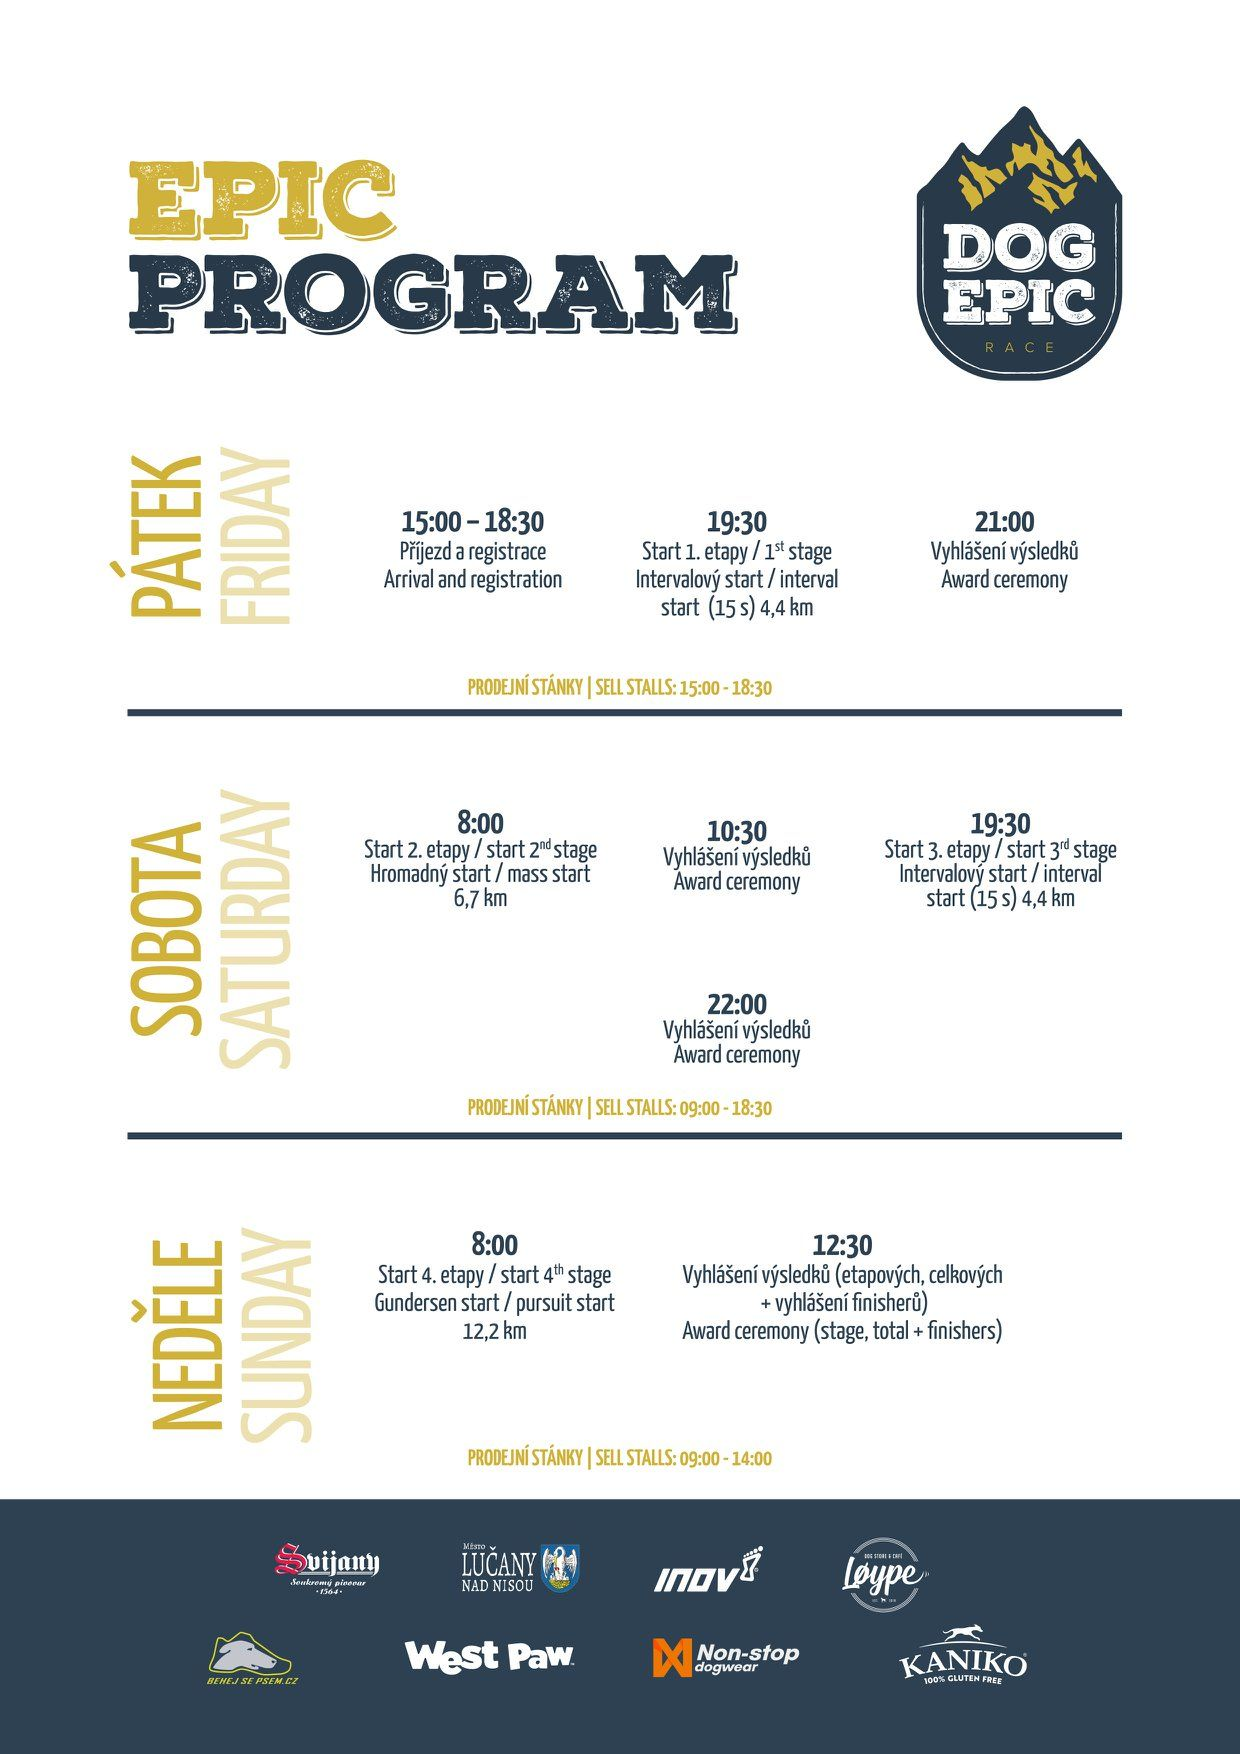 program dog epic 2019